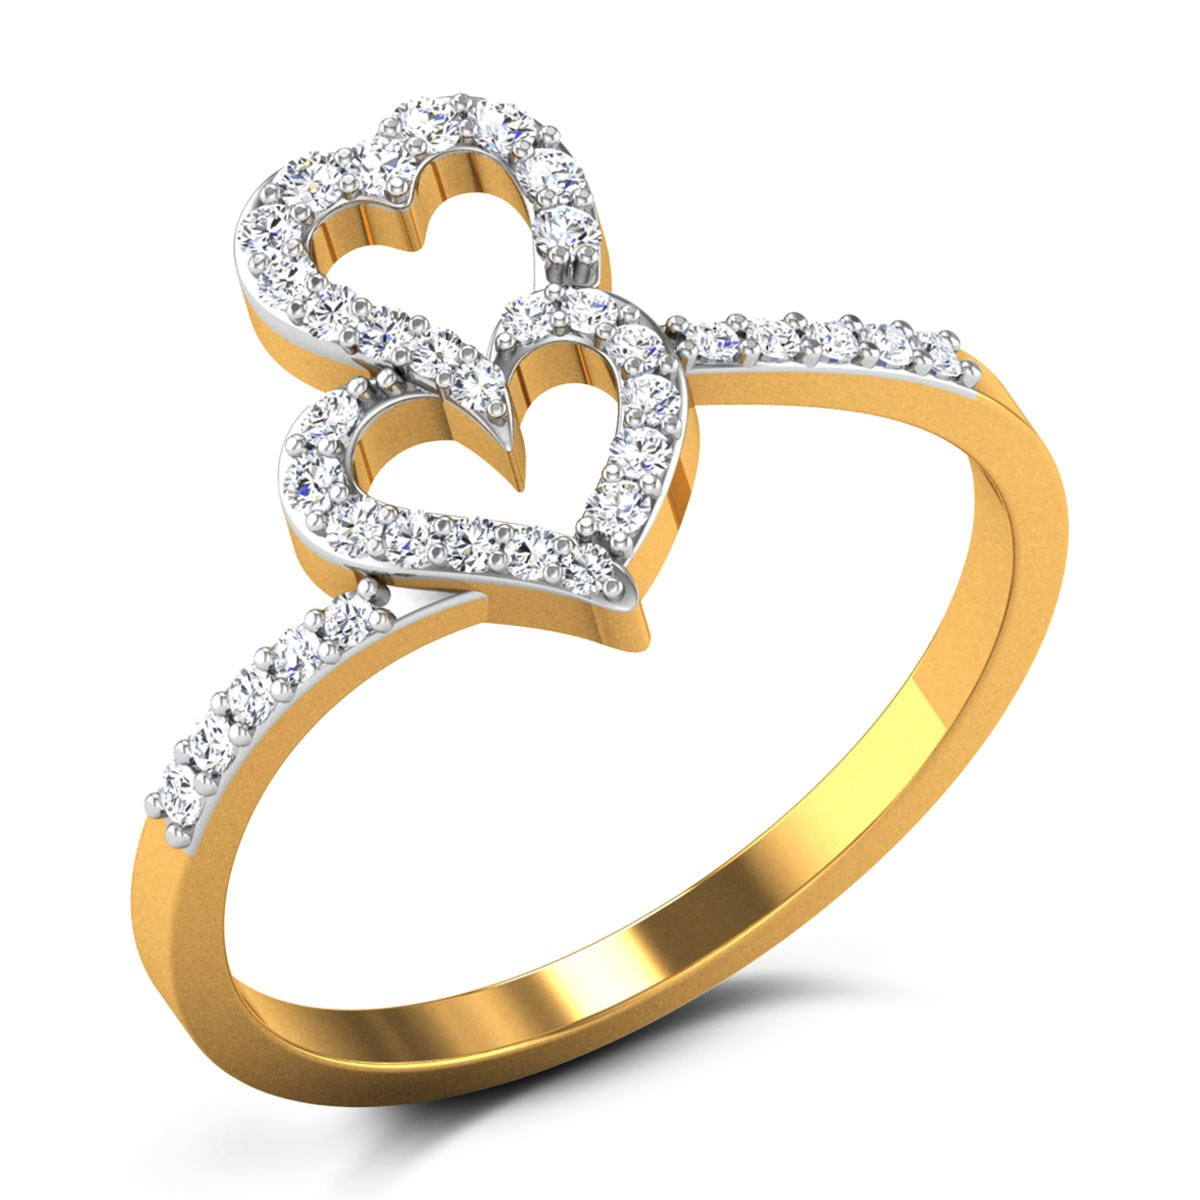 Buy Rowena Fused Hearts Diamond Ring in 2.62 Grams Gold Online